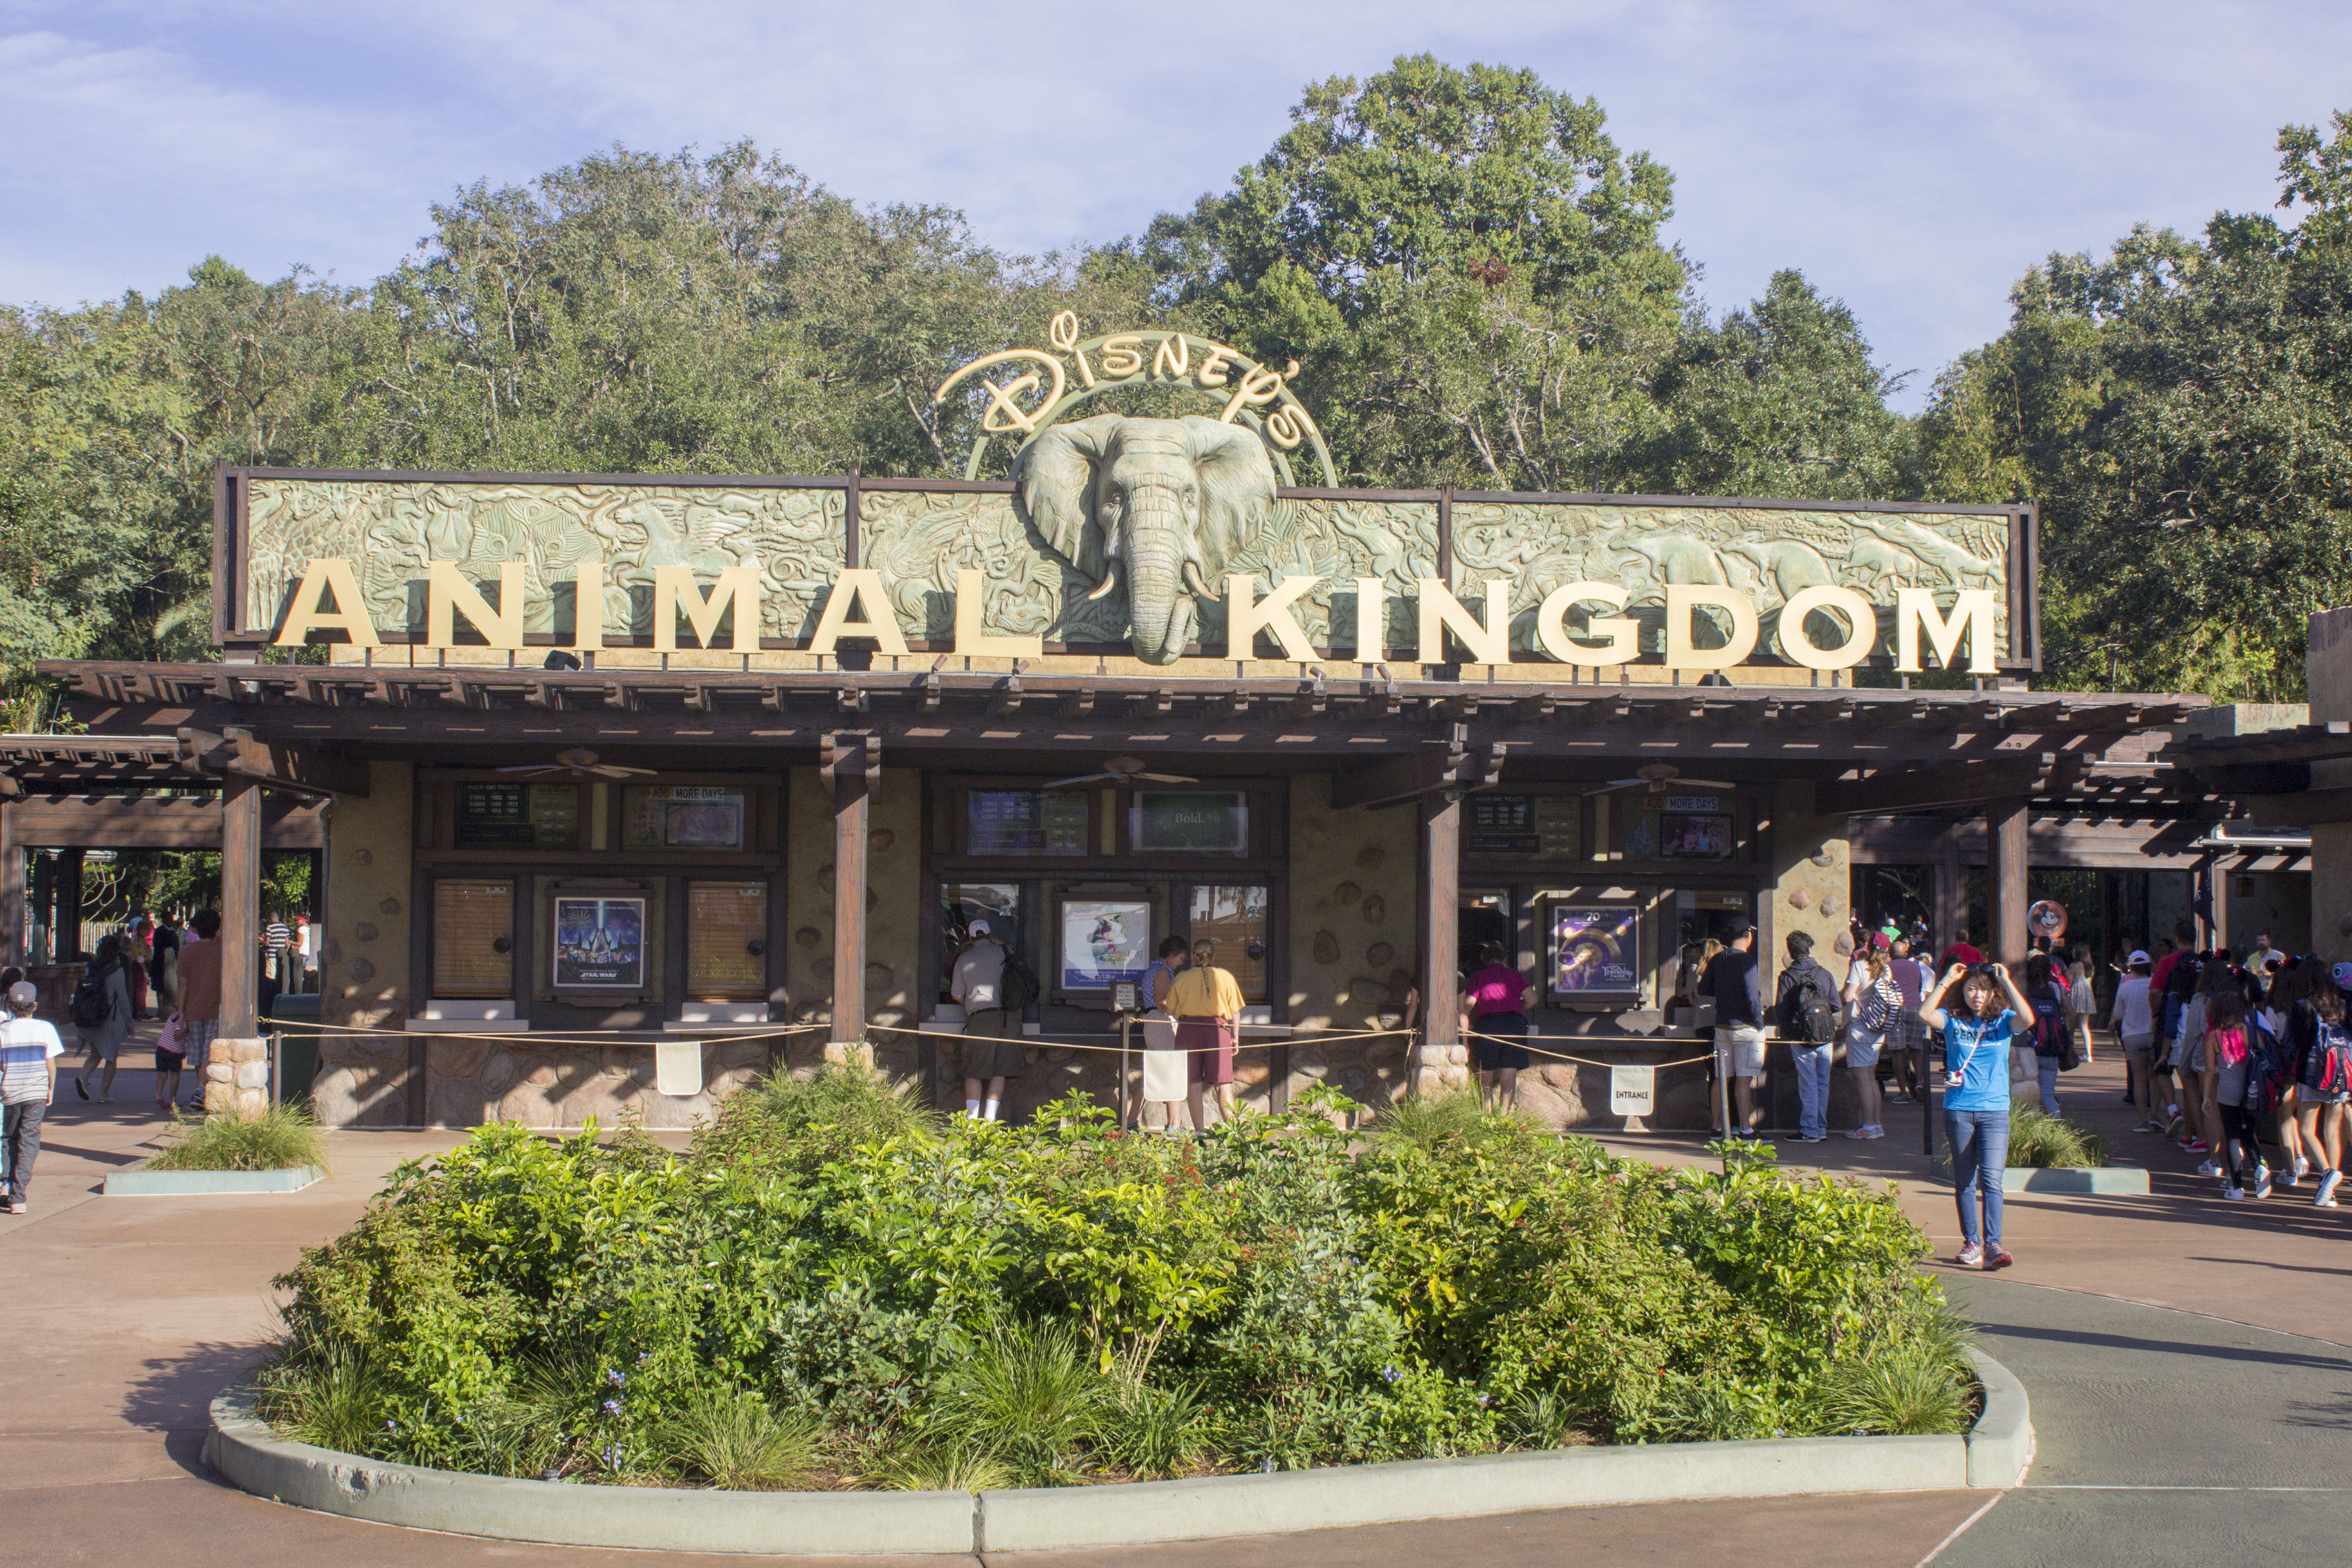 A former Disney Imagineer s guide to Disney s Animal Kingdom     The entrance to Disney s Animal Kingdom at the Walt Disney World Resort    Photo by Mark Eades  Orange County Register SCNG